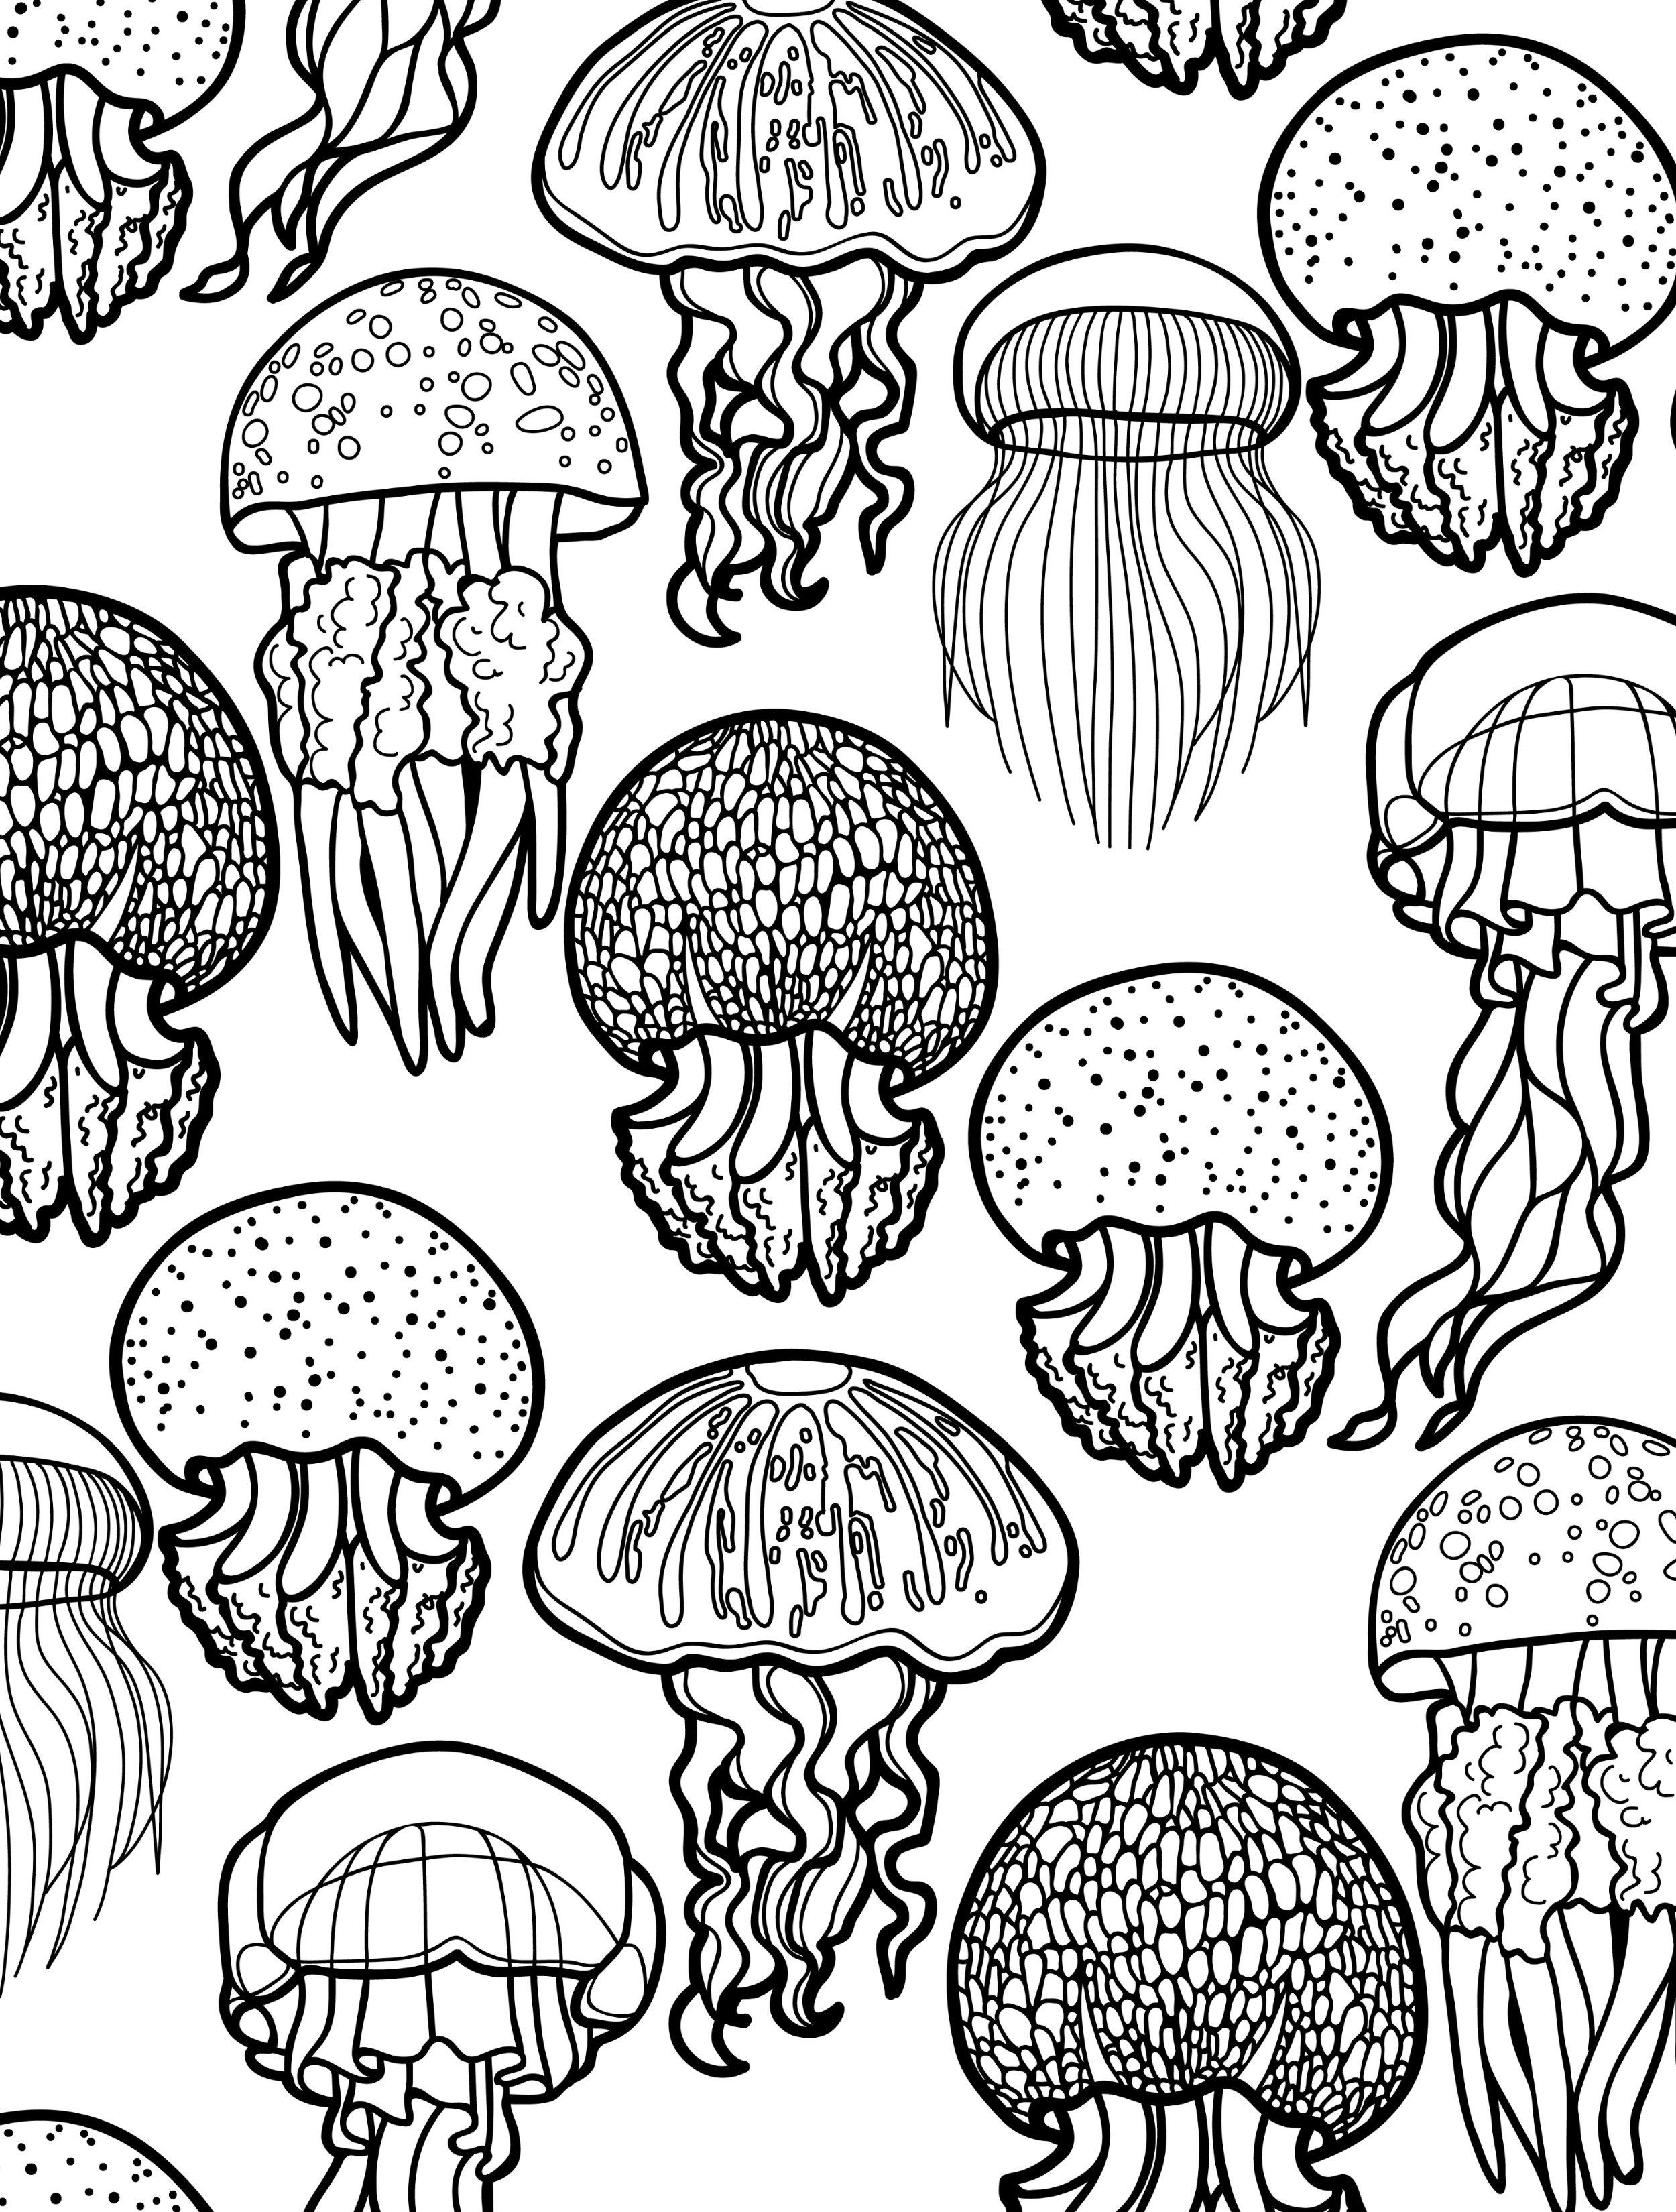 ocean themed coloring pages for adults to color pic | Paper Art ...